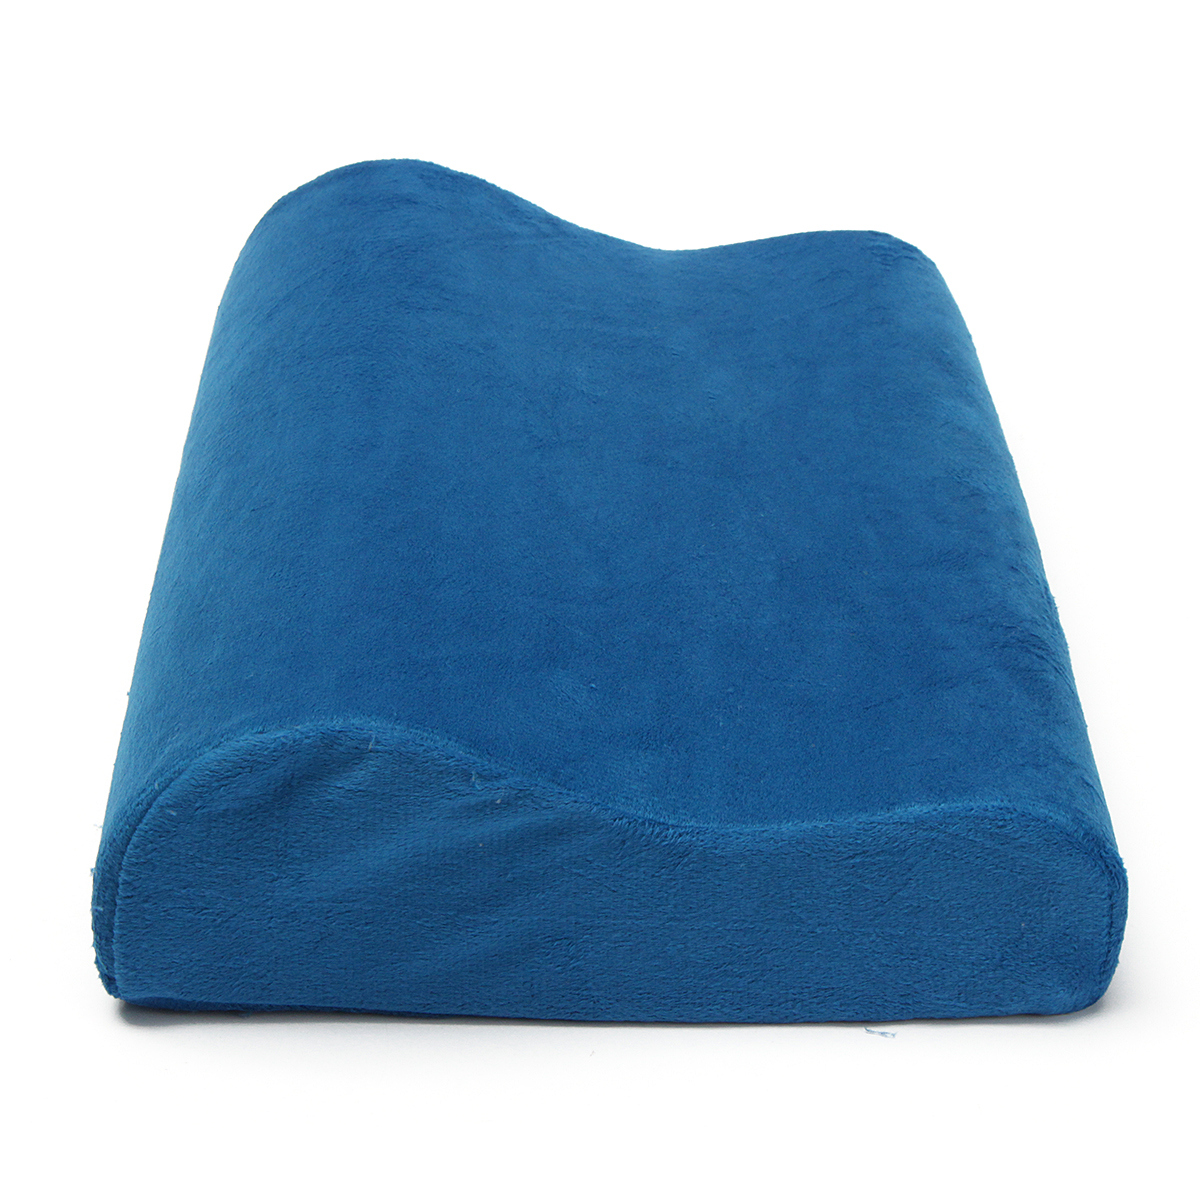 Memory Foam Contour Neck Spine Back Support Orthopaedic Firm Pillow Head Cushion